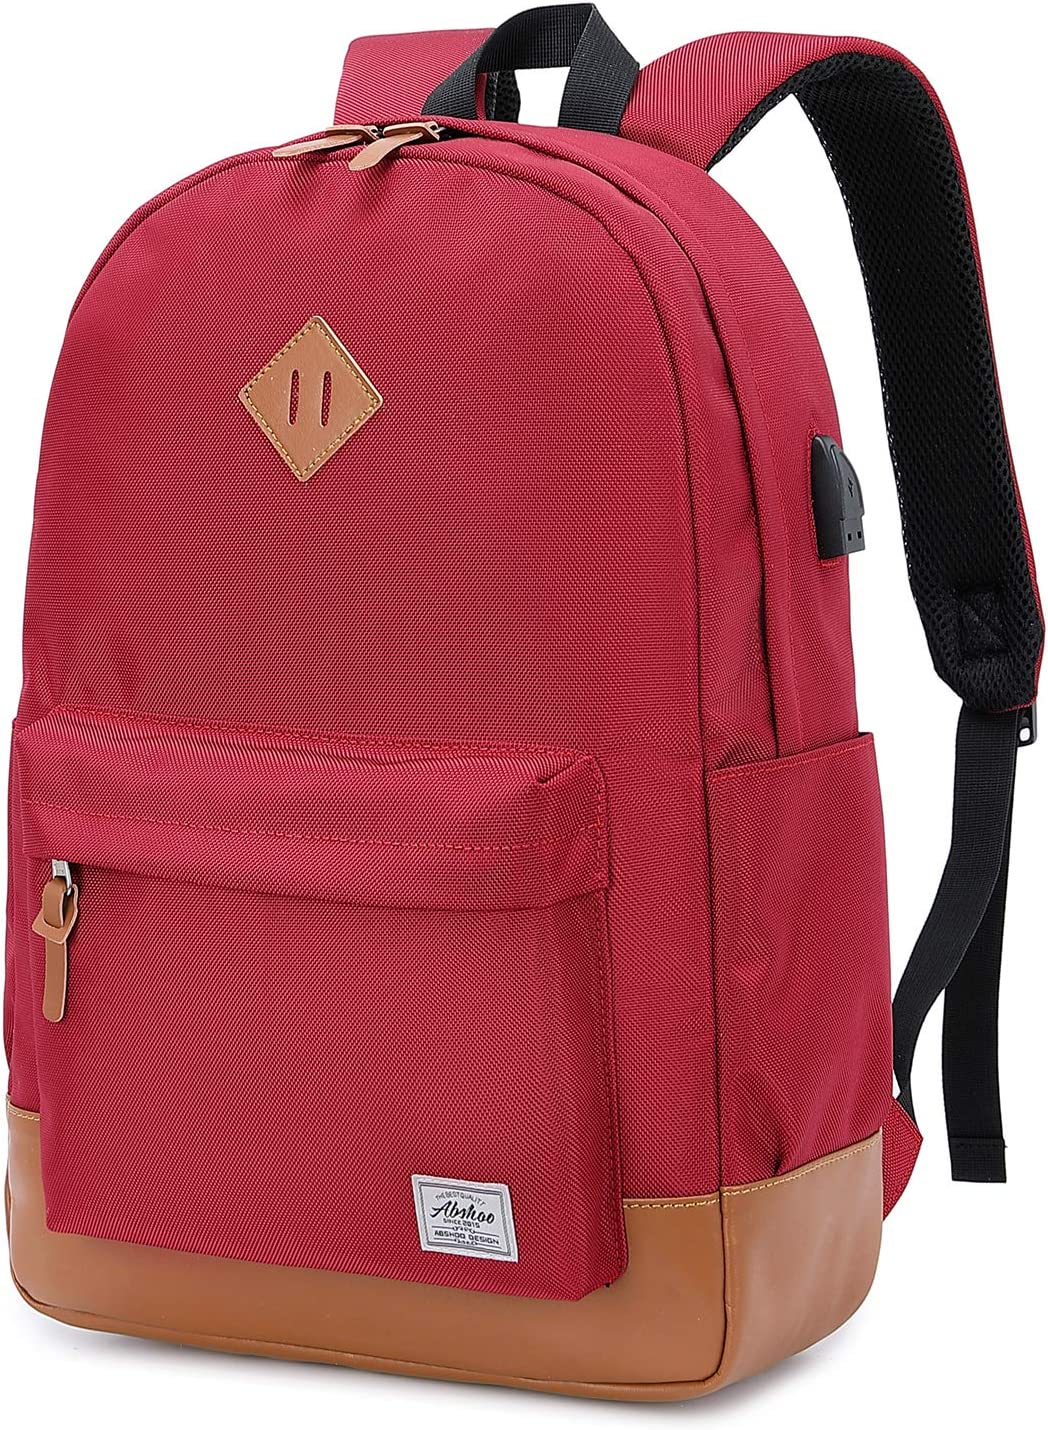 Abshoo Classical Basic Womens Travel Backpack For College Men Water Resistant Laptop School Bookbag (USB Red)